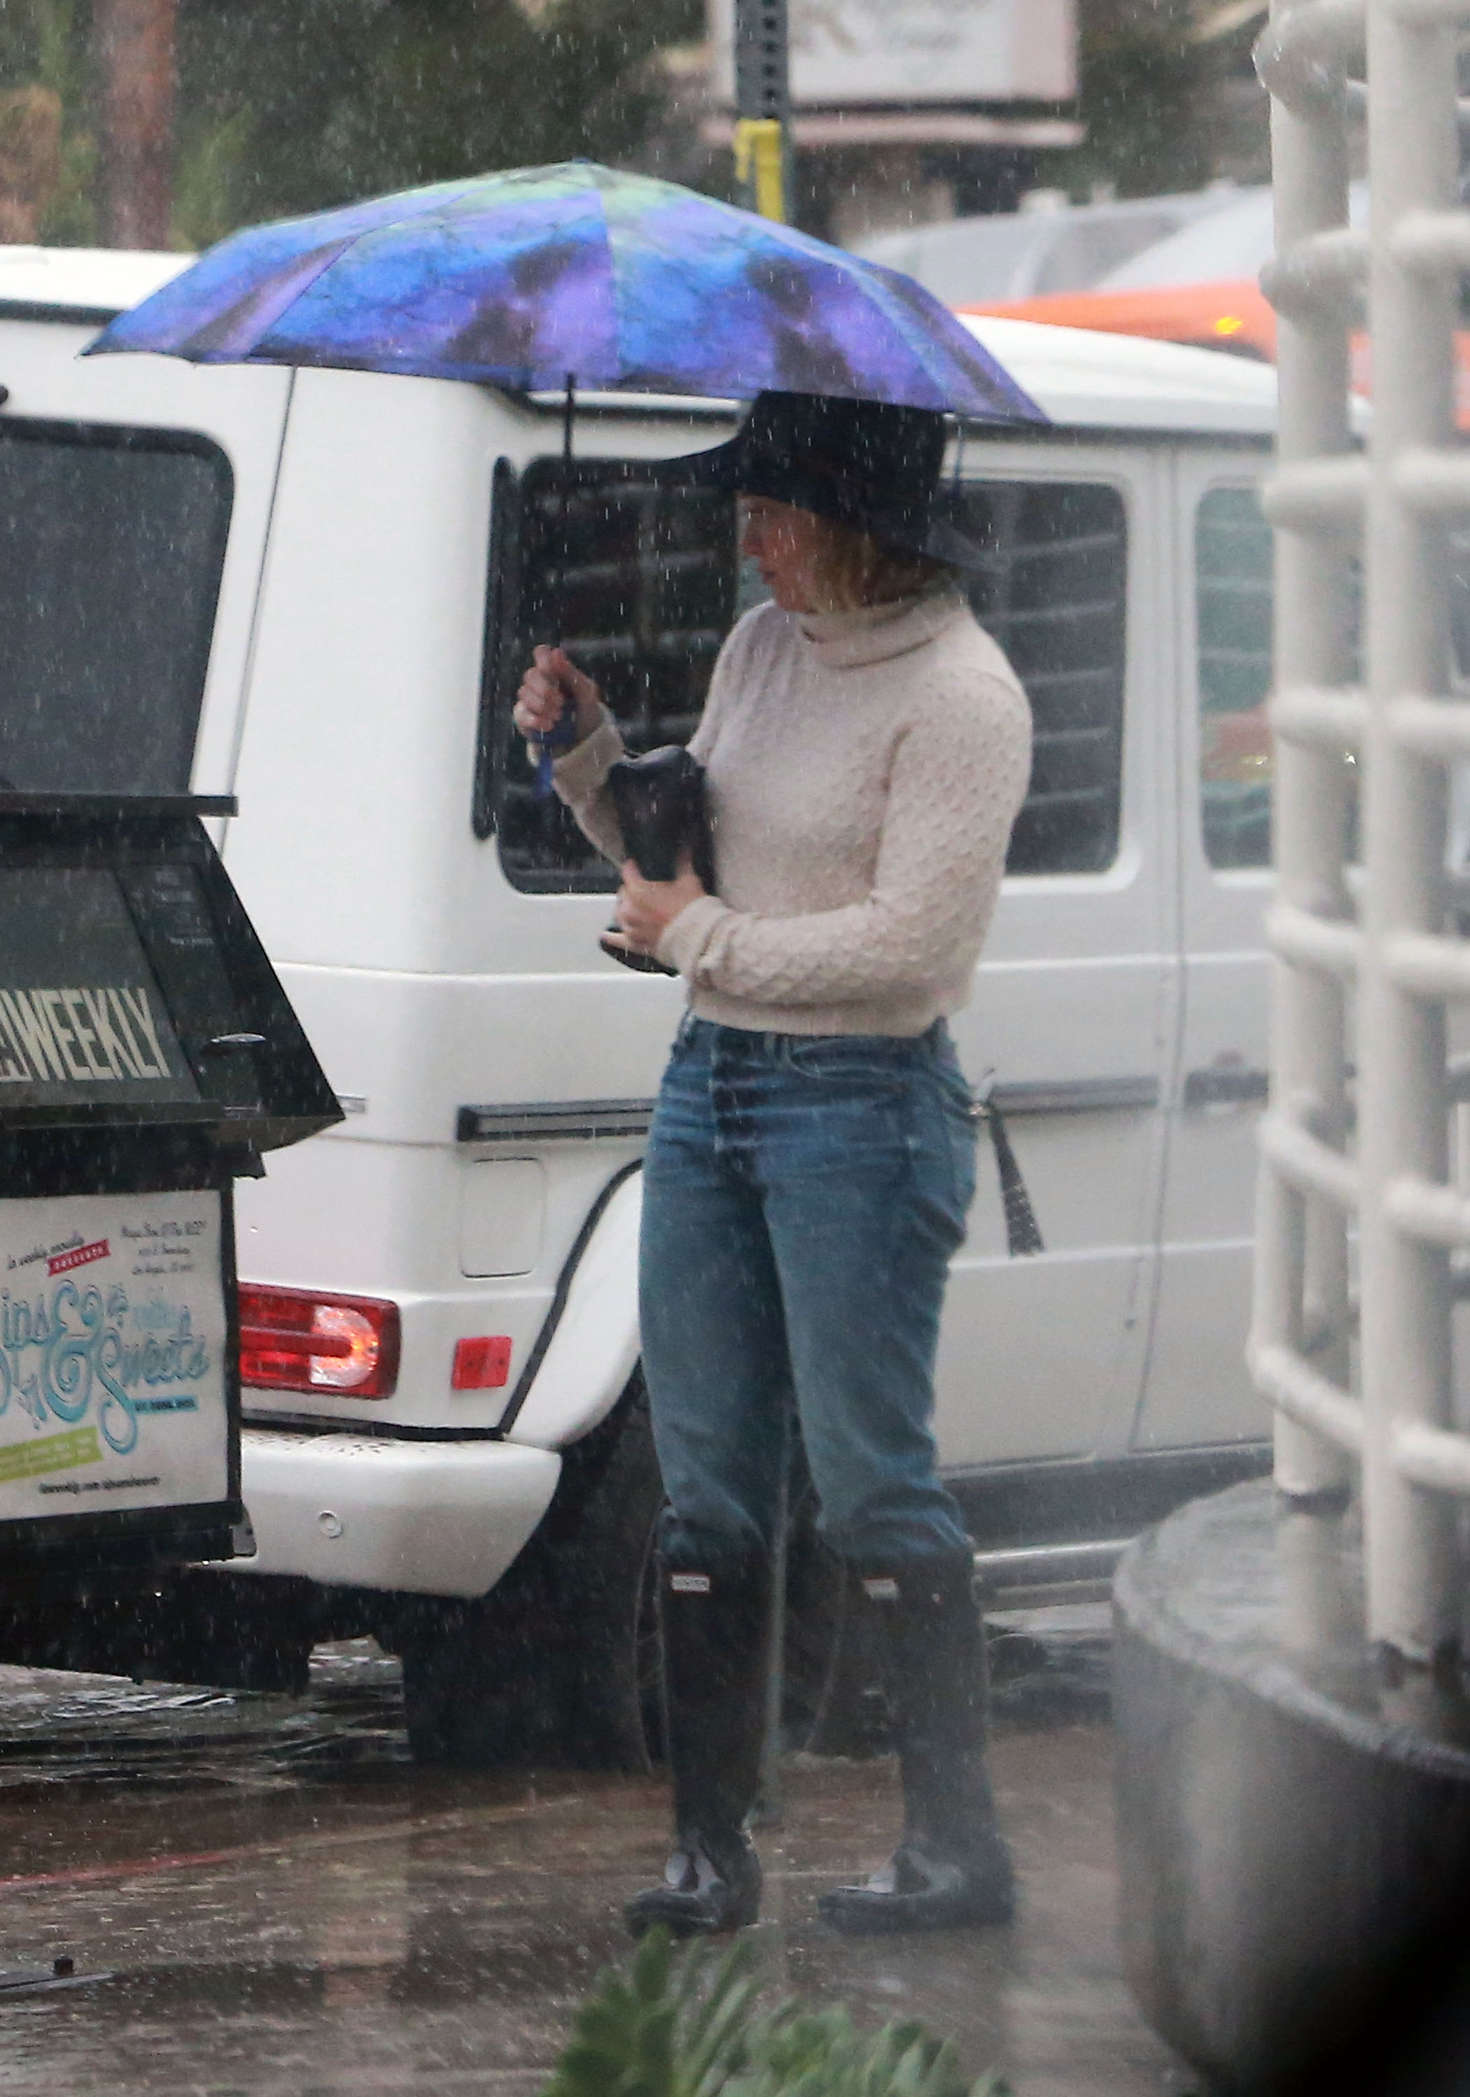 Hilary Duff 2016 : Hilary Duff in Jeans out on a rainy day -10